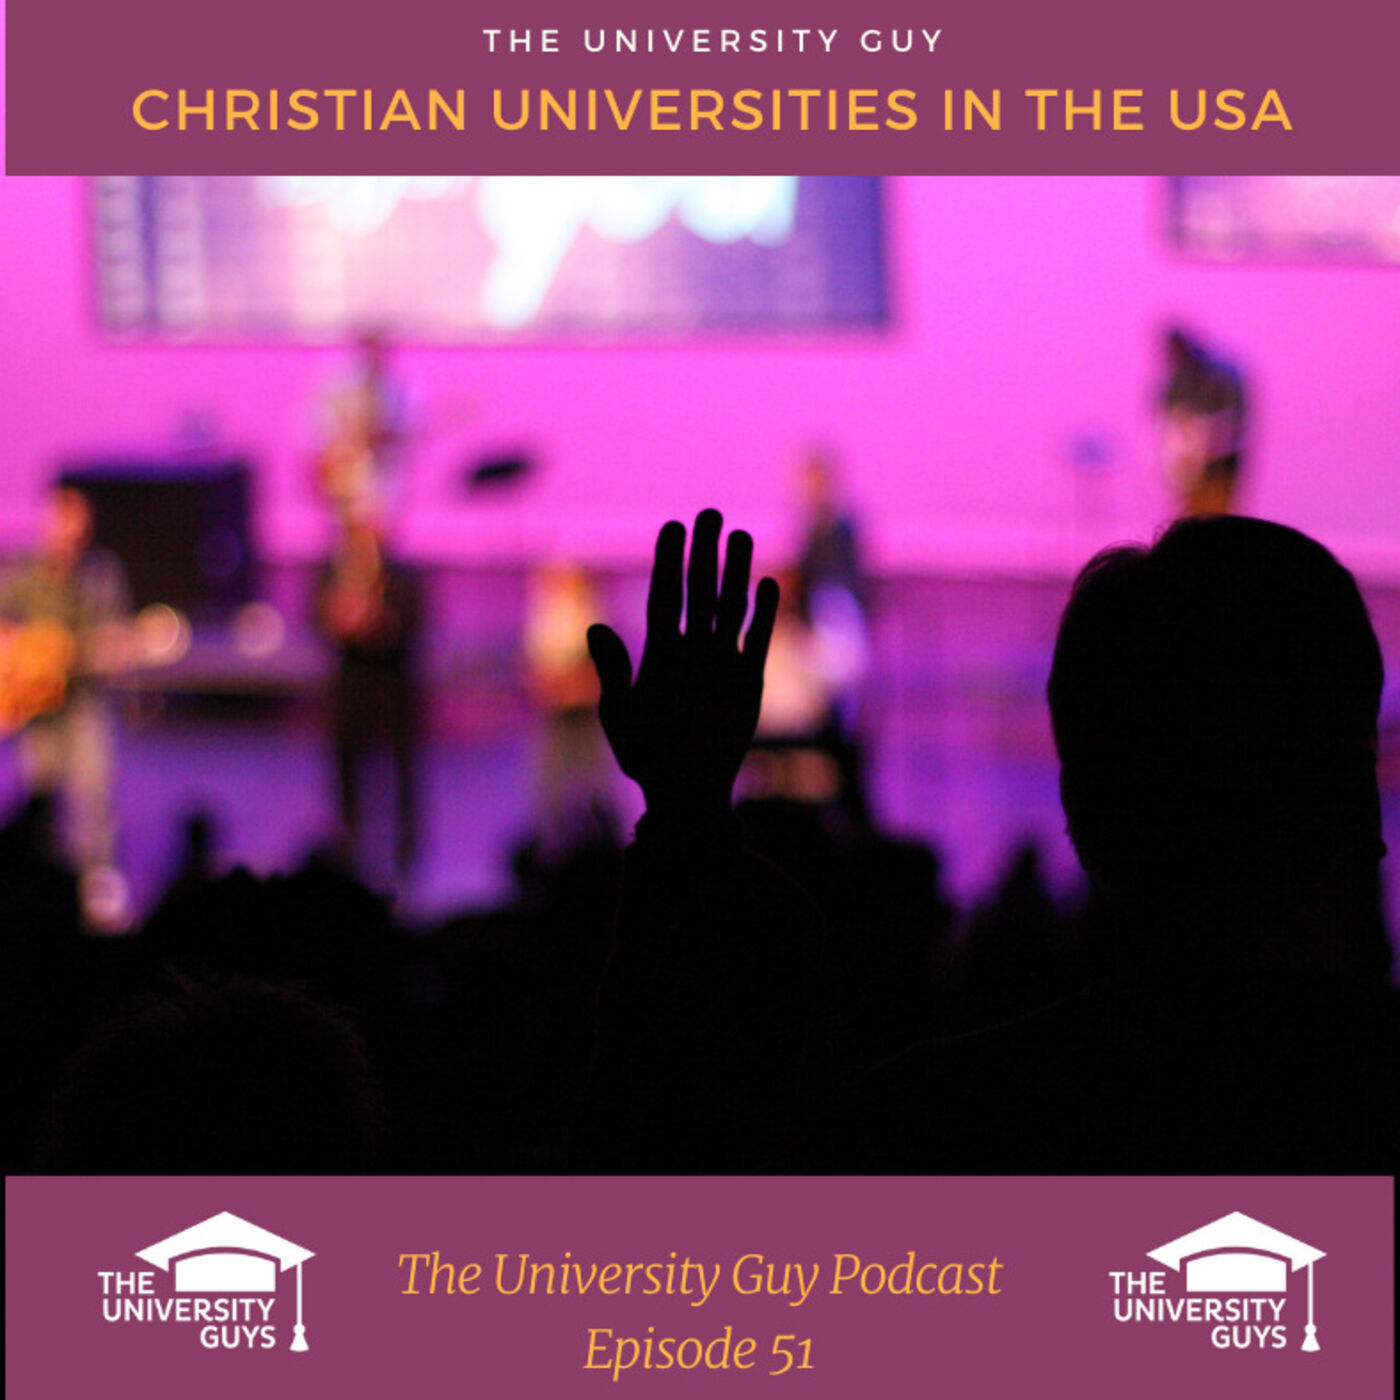 Episode 51: Christian Universities in the USA